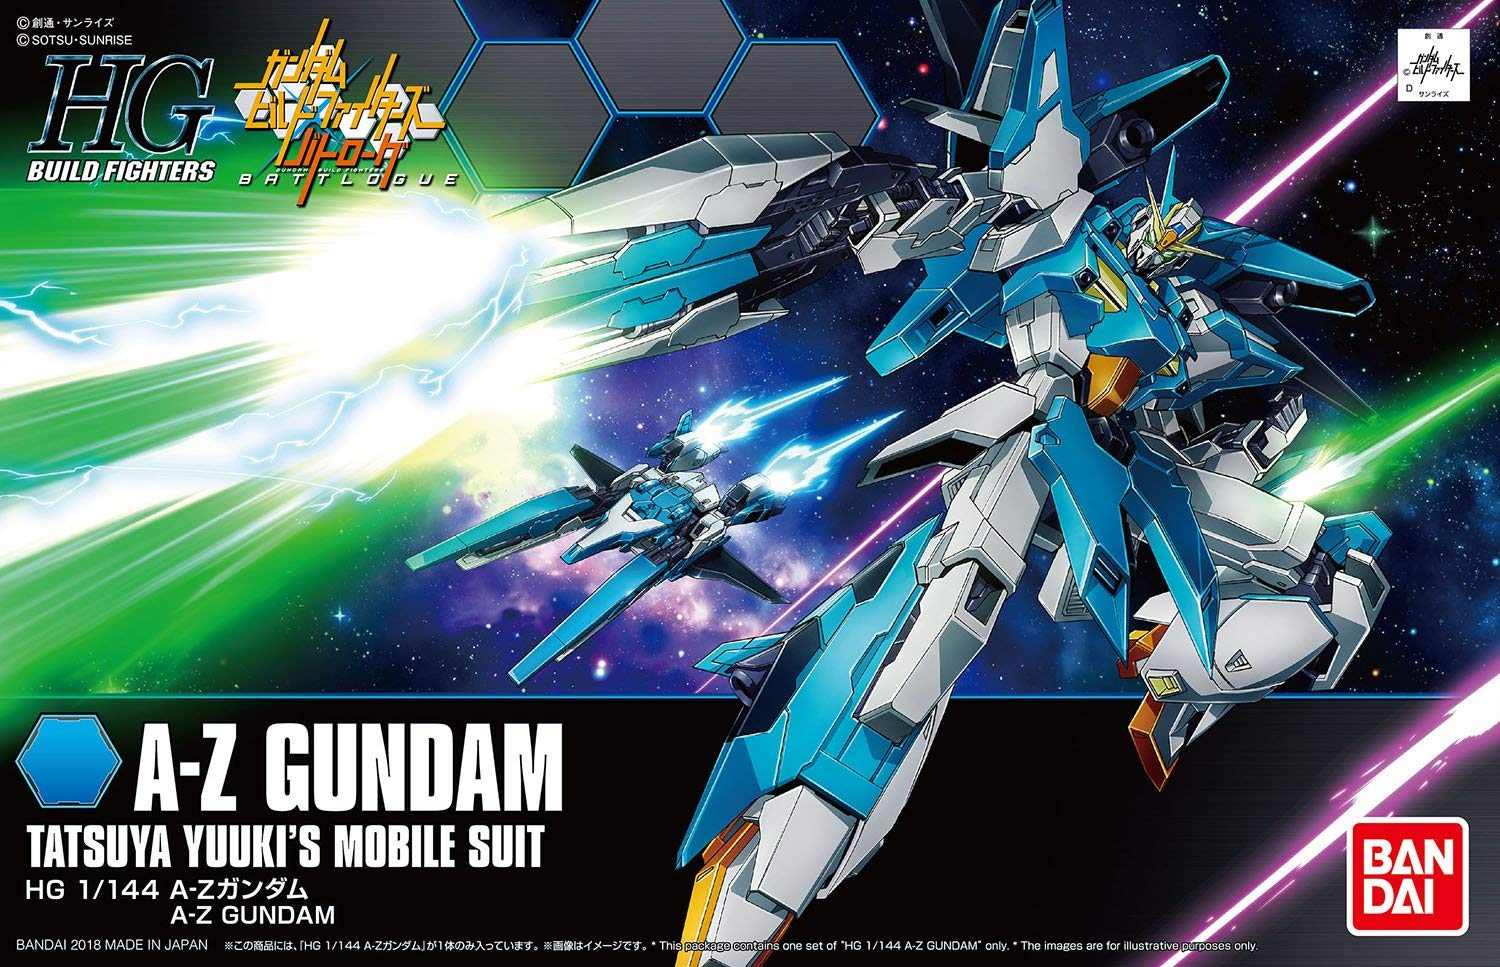 Gundam: High Grade - A-Z Gundam 1:144 Model Kit